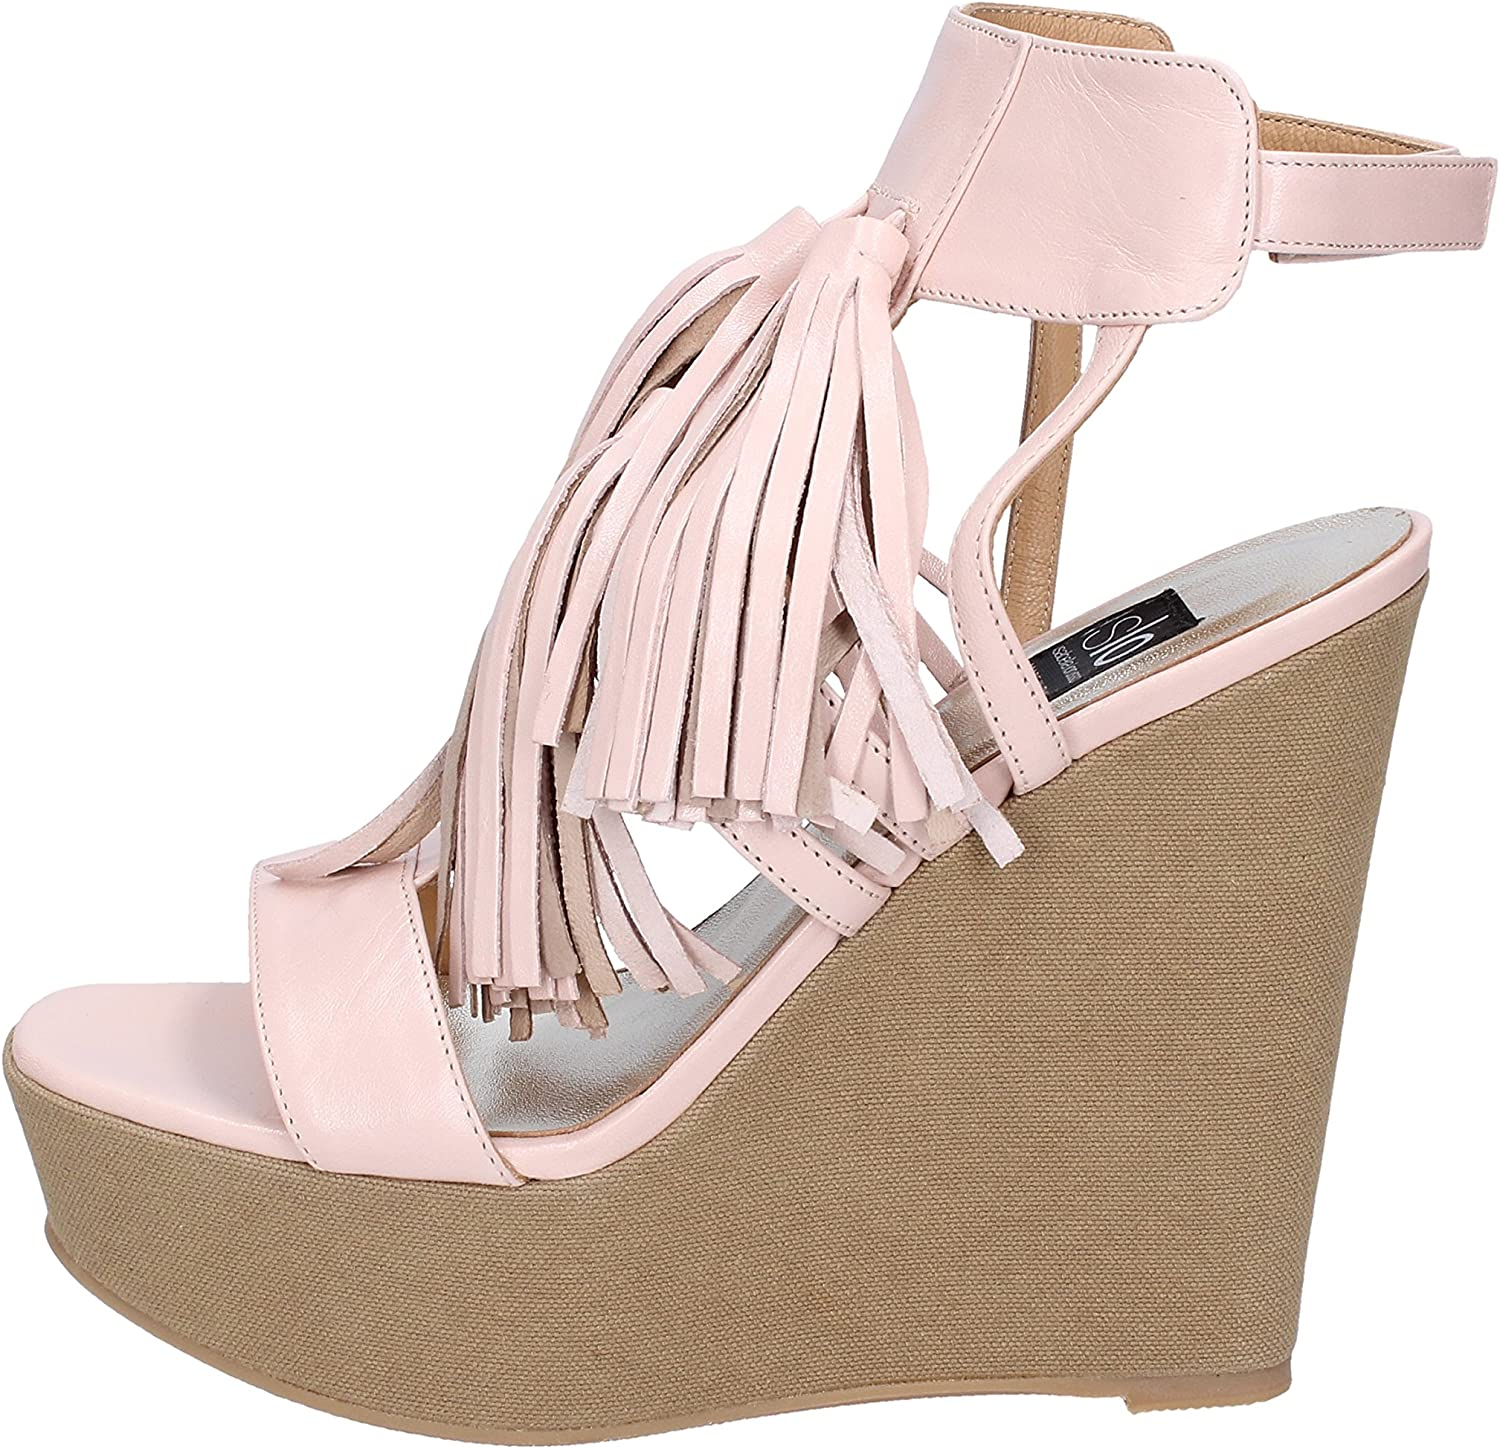 ISLO Sandals Womens Leather Pink